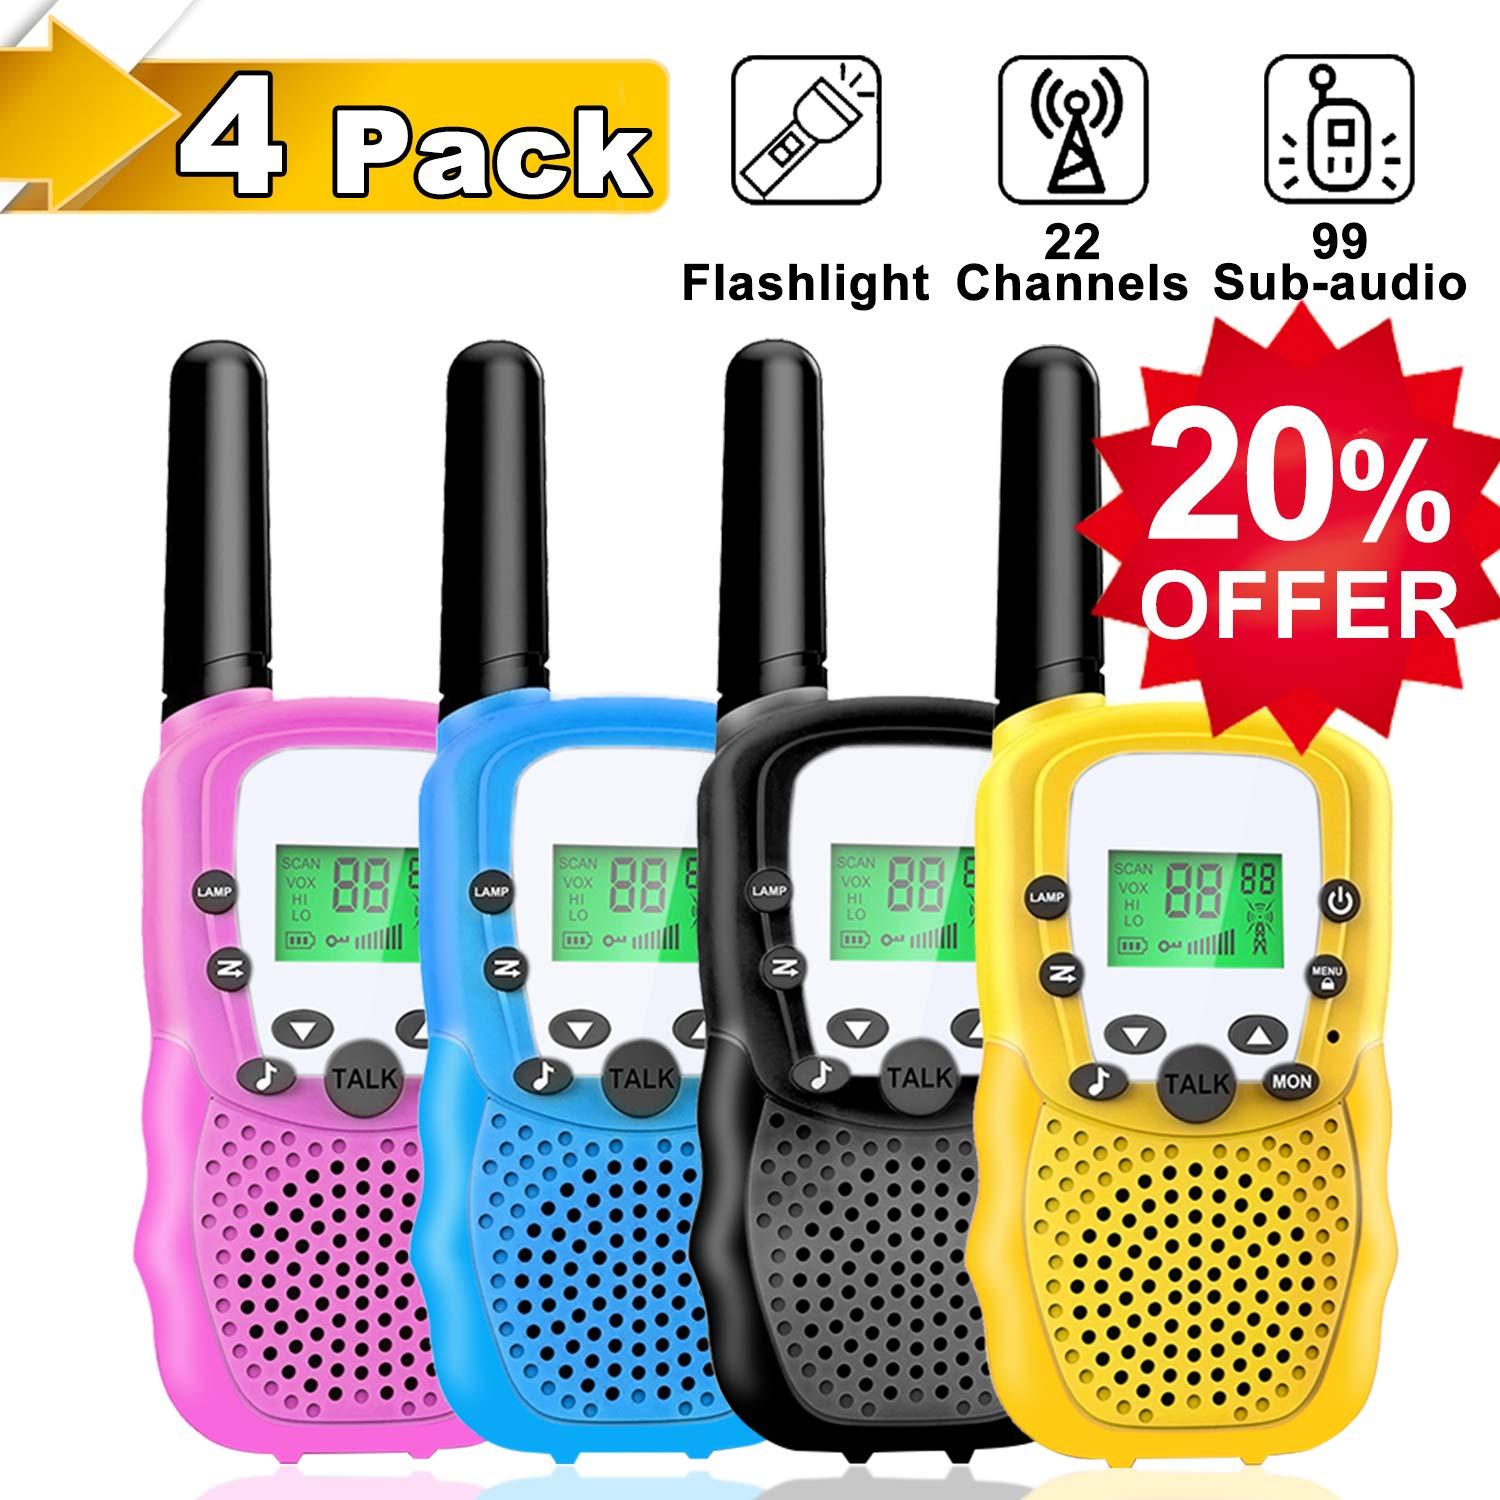 4 Pack Kids Walkie Talkies - 22 Channels 2 Way Radio Long Range Kids Toys, Handheld Child Walkie Talkies for Boys Girls with Flashlight for Sport Outdoor Camping Hiking Prime Electronic Toy Gifts